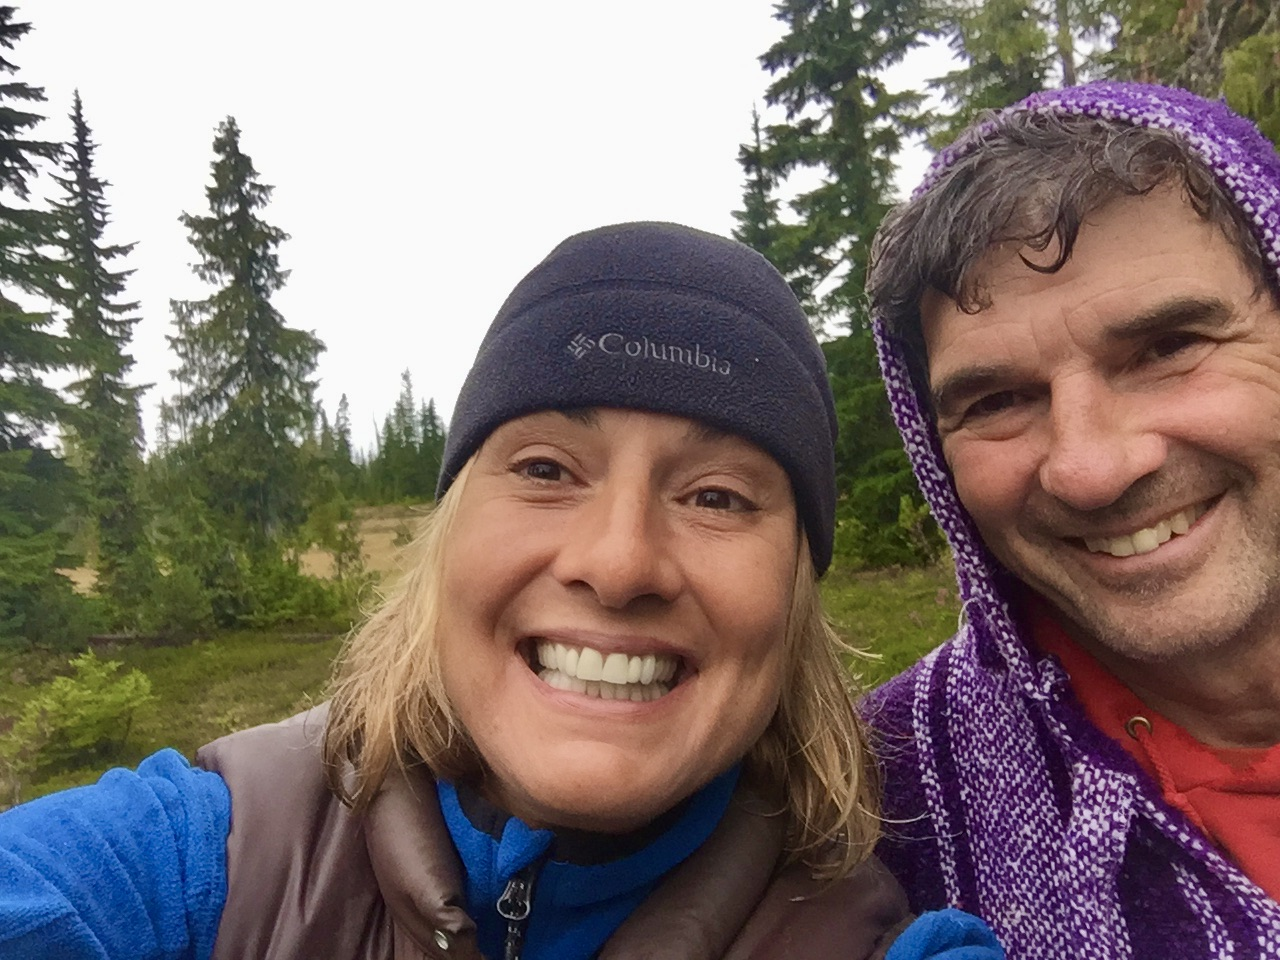 September, 2020 - Vancouver Island, British Columbia - Strathcona Provincial Park - Forbidden Plateau - Alpine Couple!